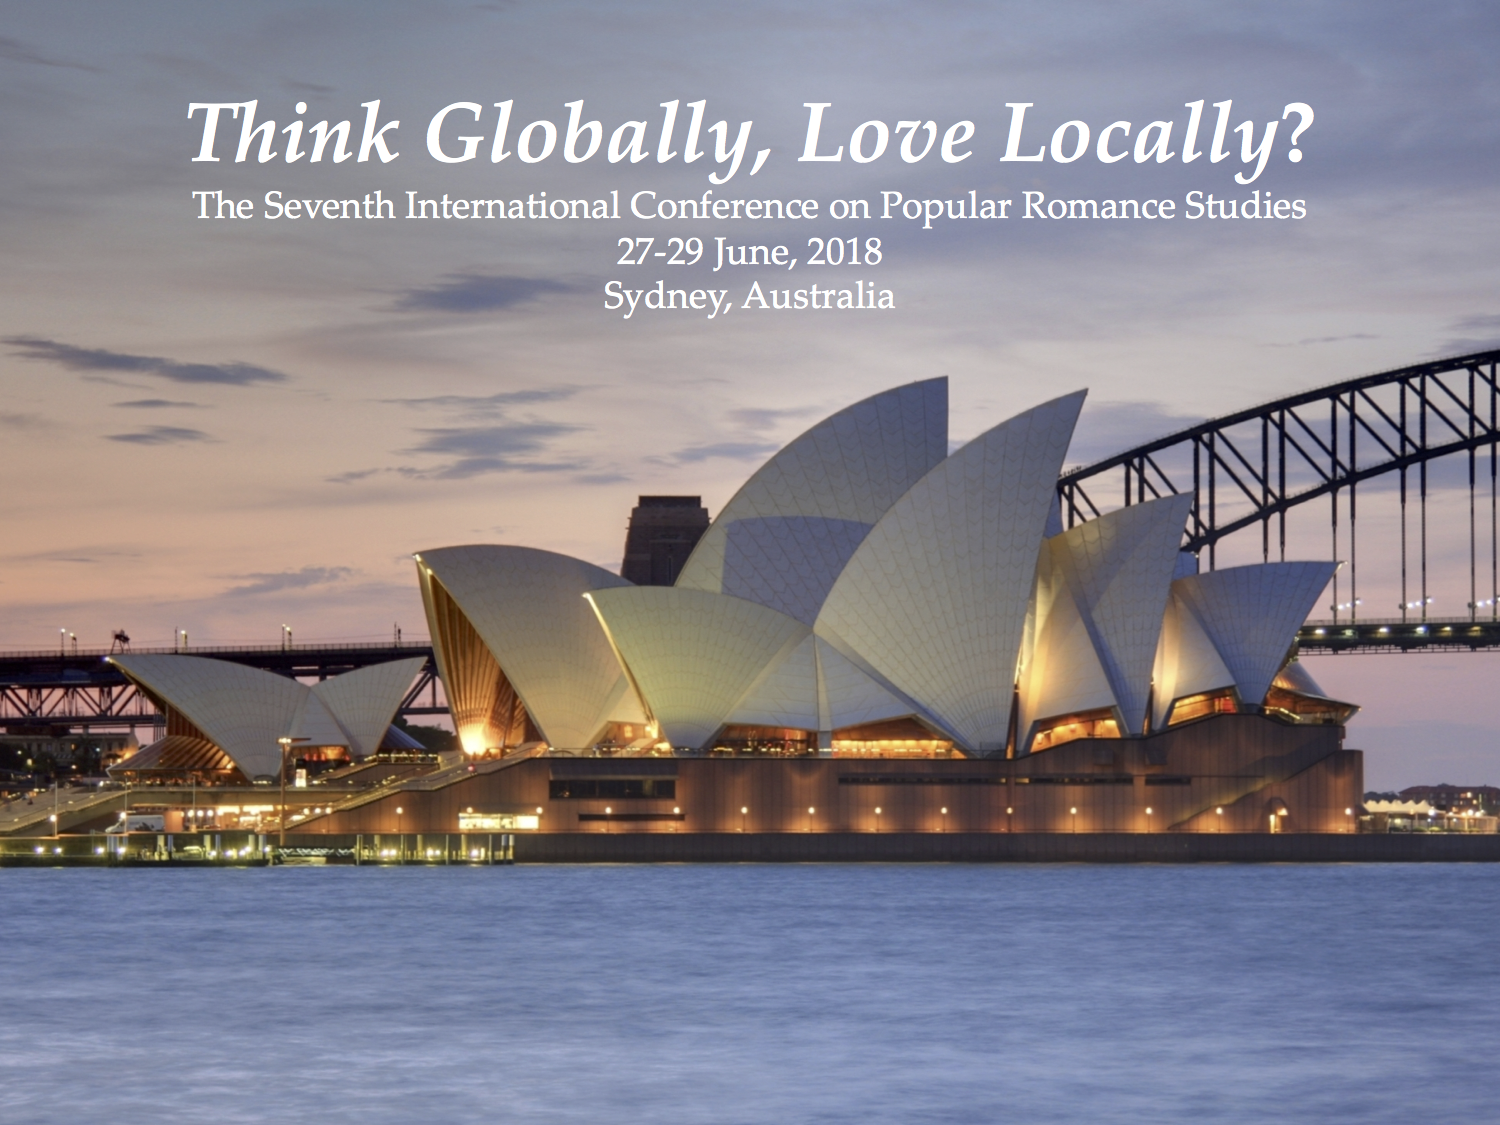 Think Globally, Love Locally?, Sydney, Australia 27-29, June, 2018